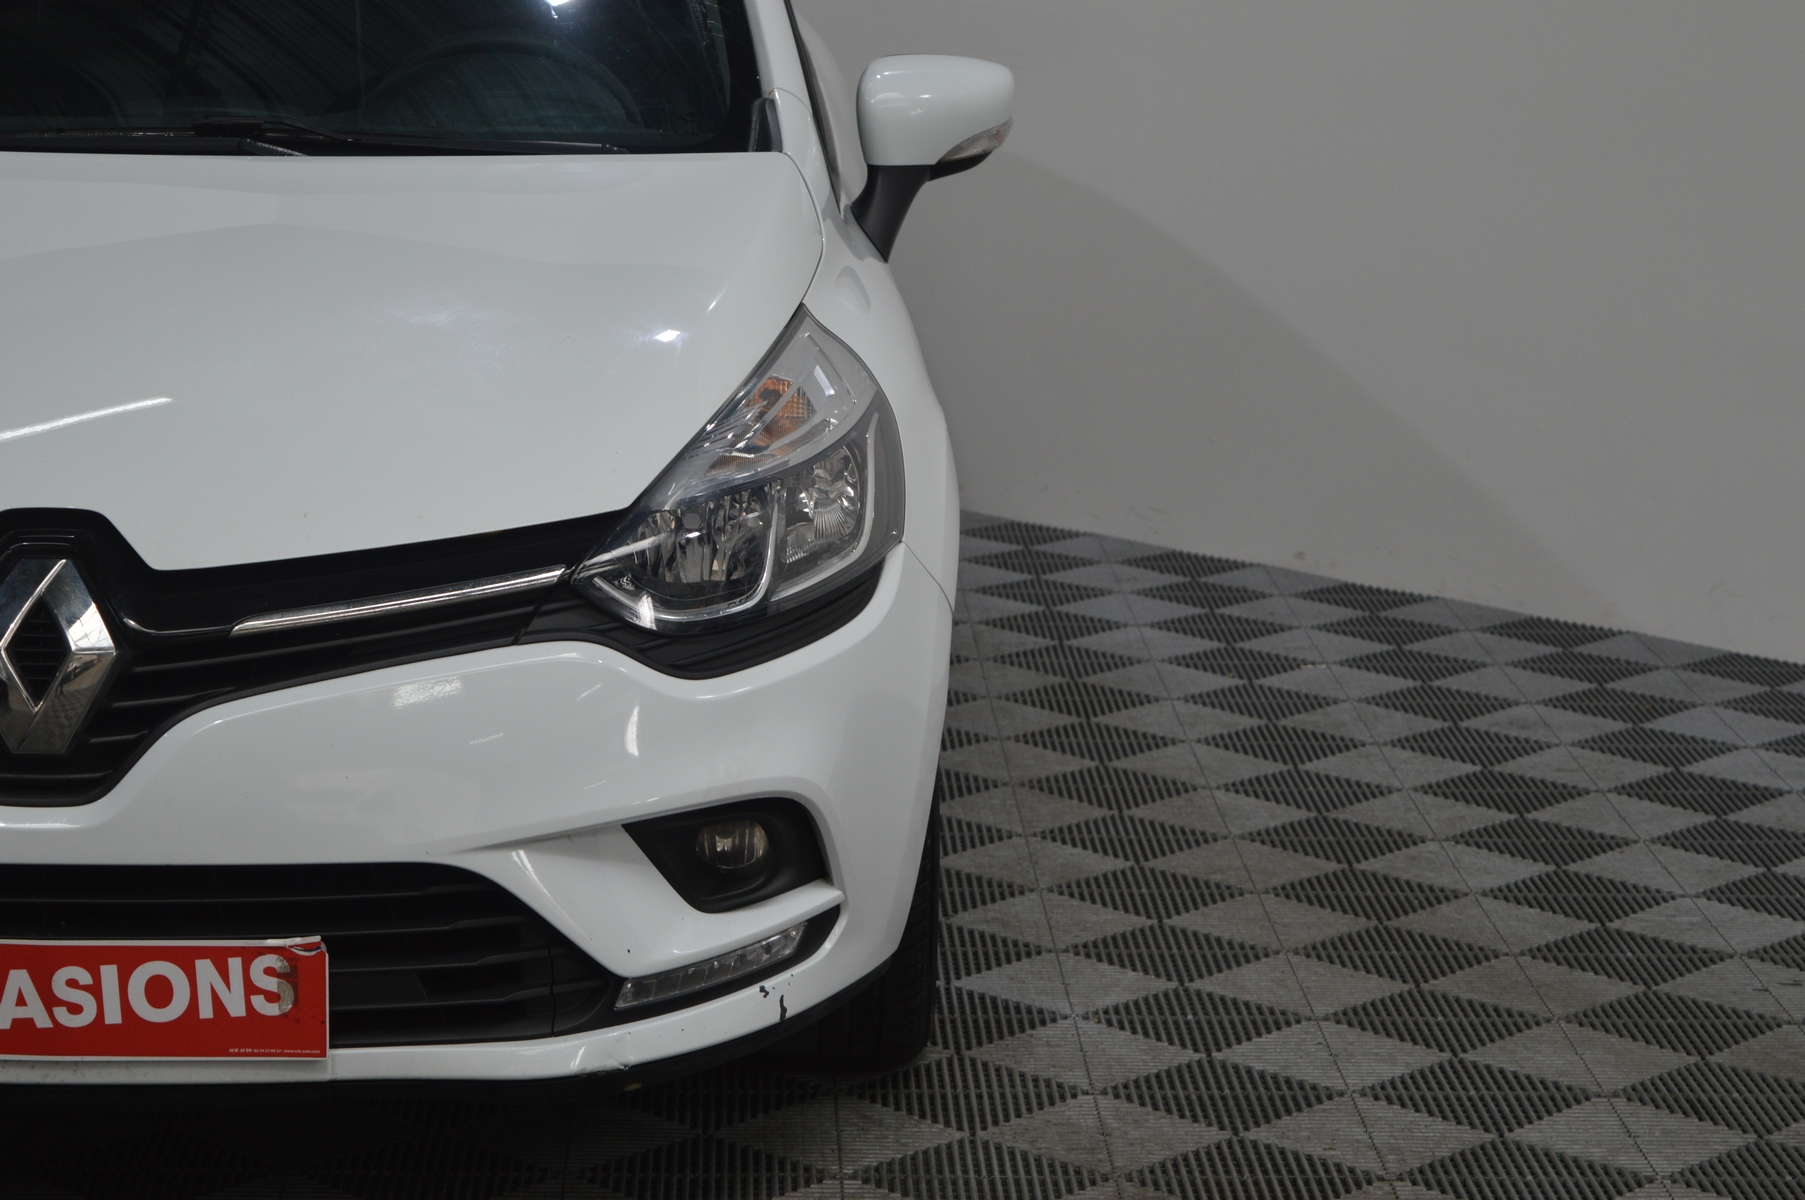 RENAULT CLIO IV SOCIETE 2018 à 7400 € - Photo n°30